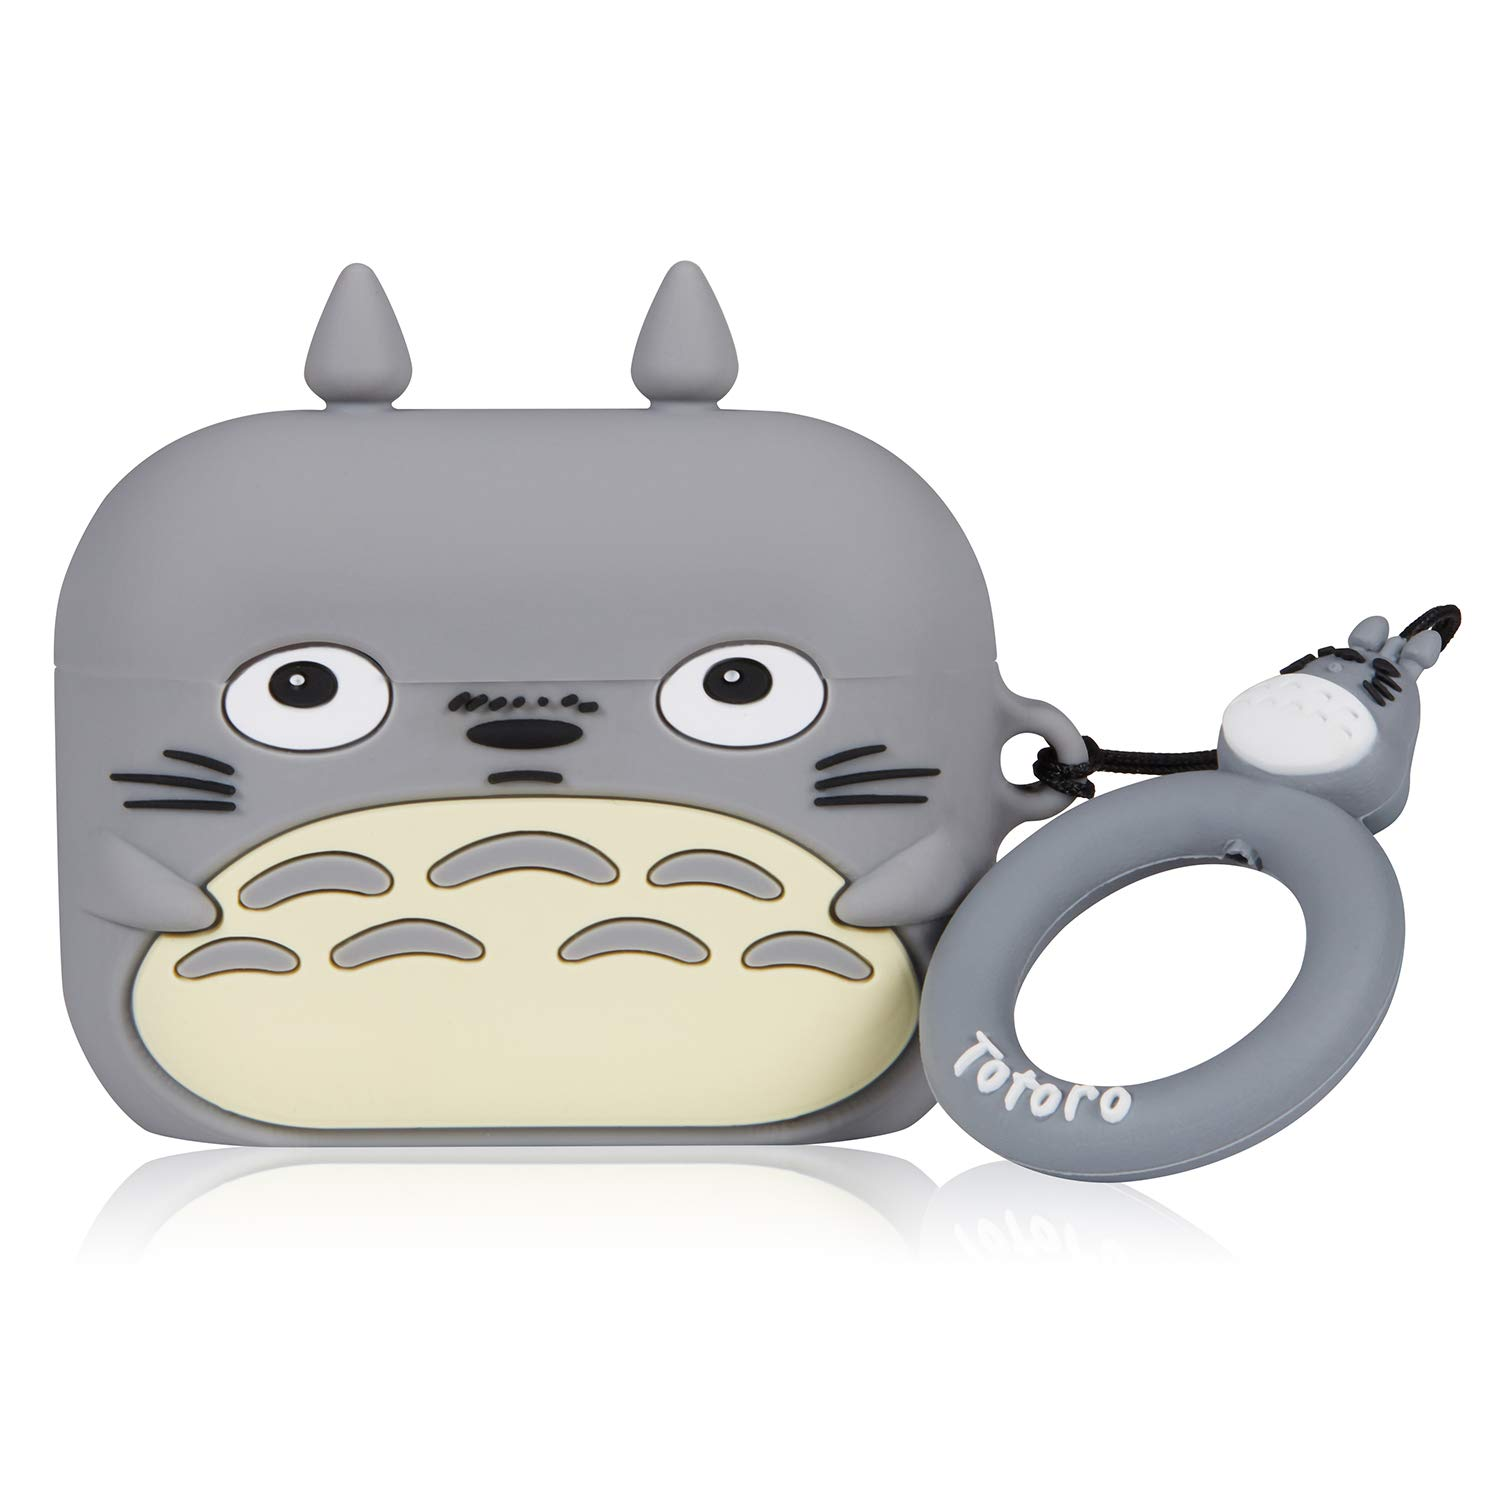 Coralogo Case for Airpods Pro/for Airpods 3 Cute, 3D Animal Fashion Character Soft Silicone Cartoon Airpod Skin Funny Fun Cool Keychain Design Kids Teens Girls Boys Cover Cases Air pods 3 (Totoro)